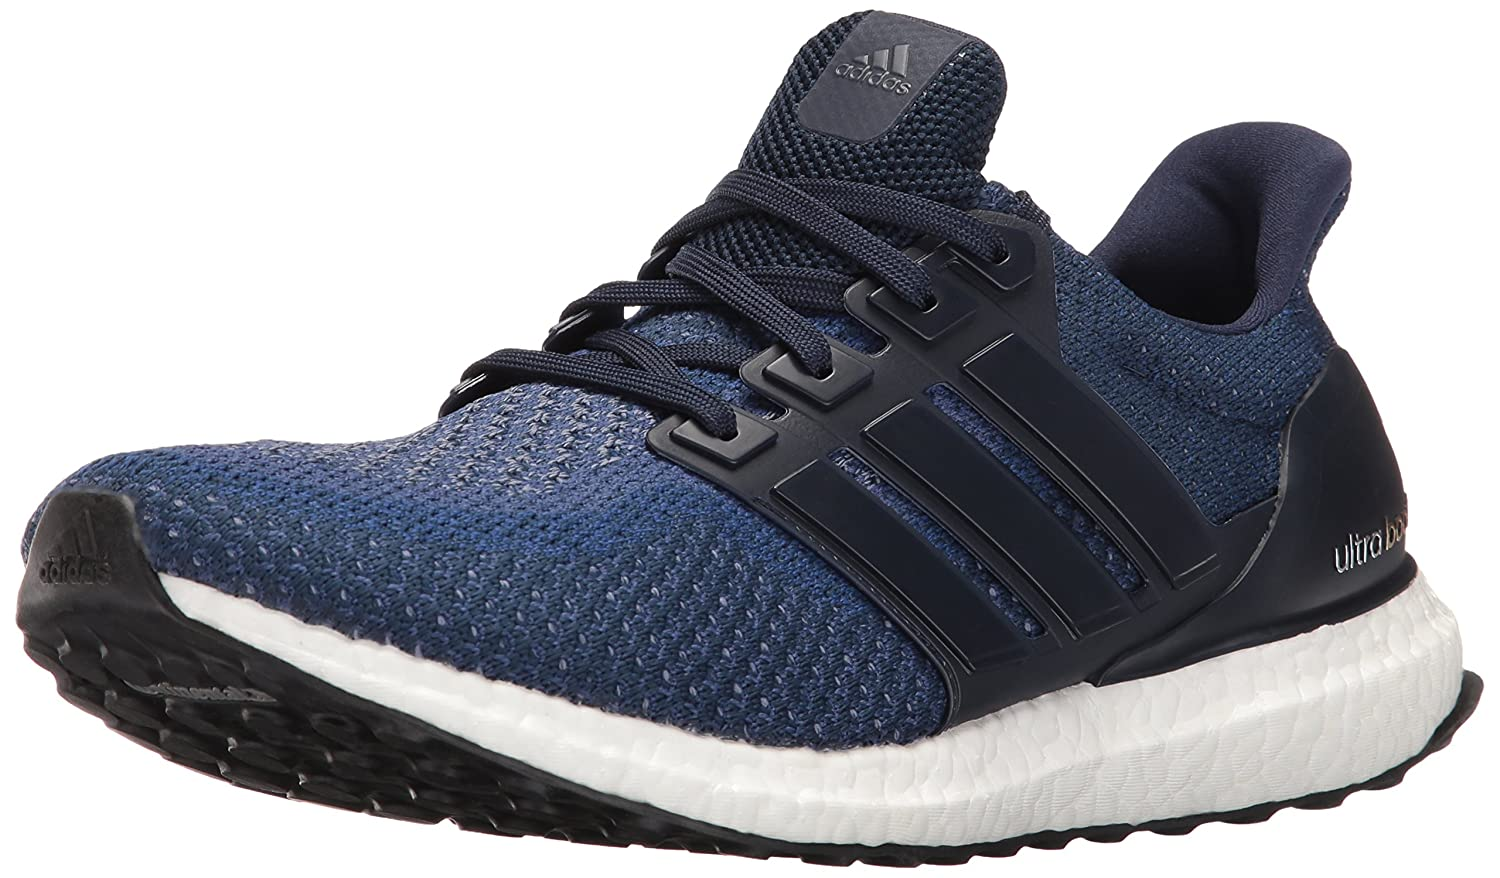 Bleu (Collegiate Navy Collegiate Navy Night Navy) adidas Ultra Boost M M, Chaussures de Running Compétition Homme 47 EU